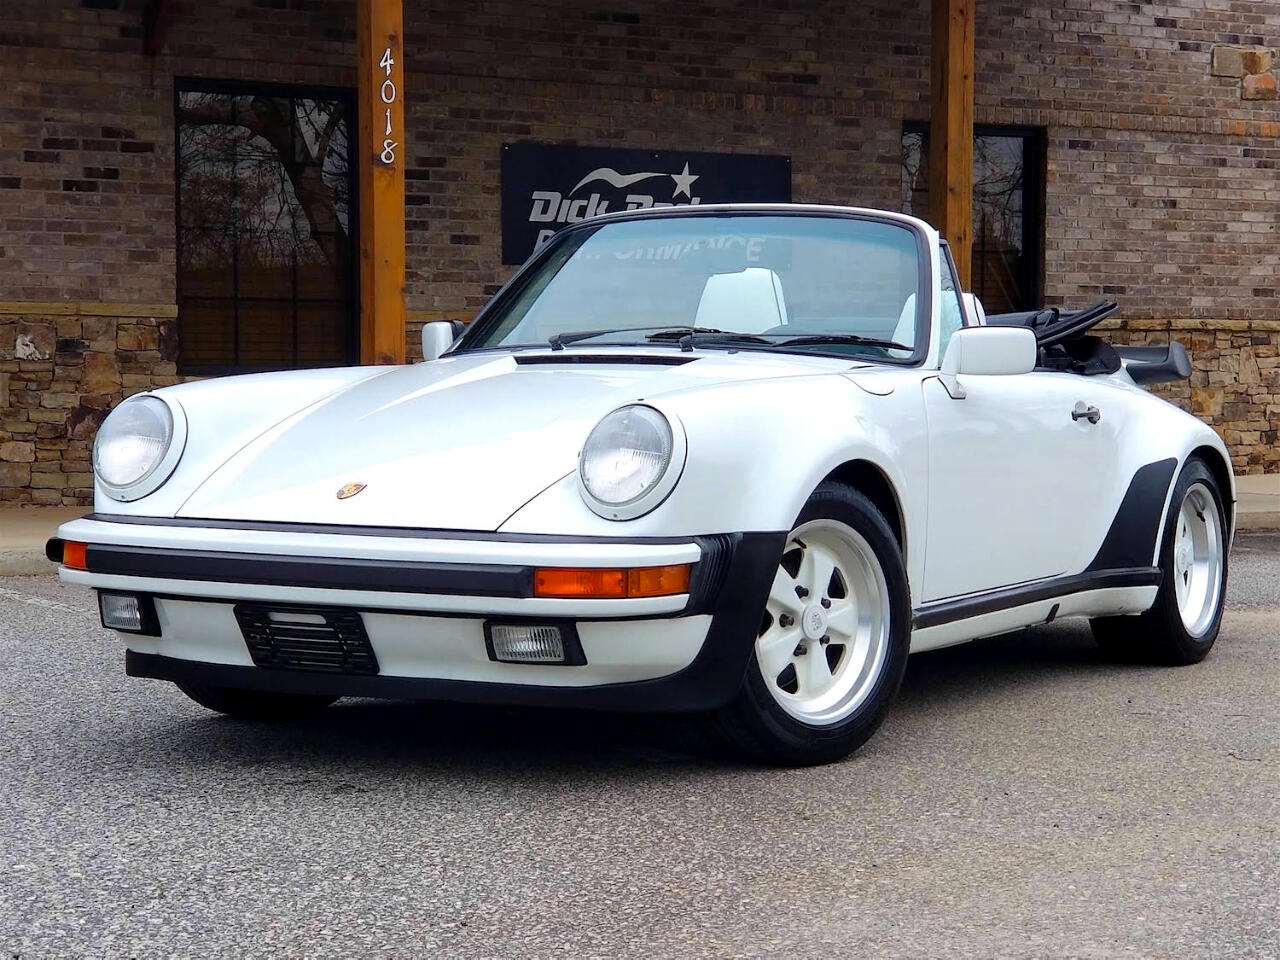 1988 Porsche 911 Carrera Cabriolet M491 Turbo Look